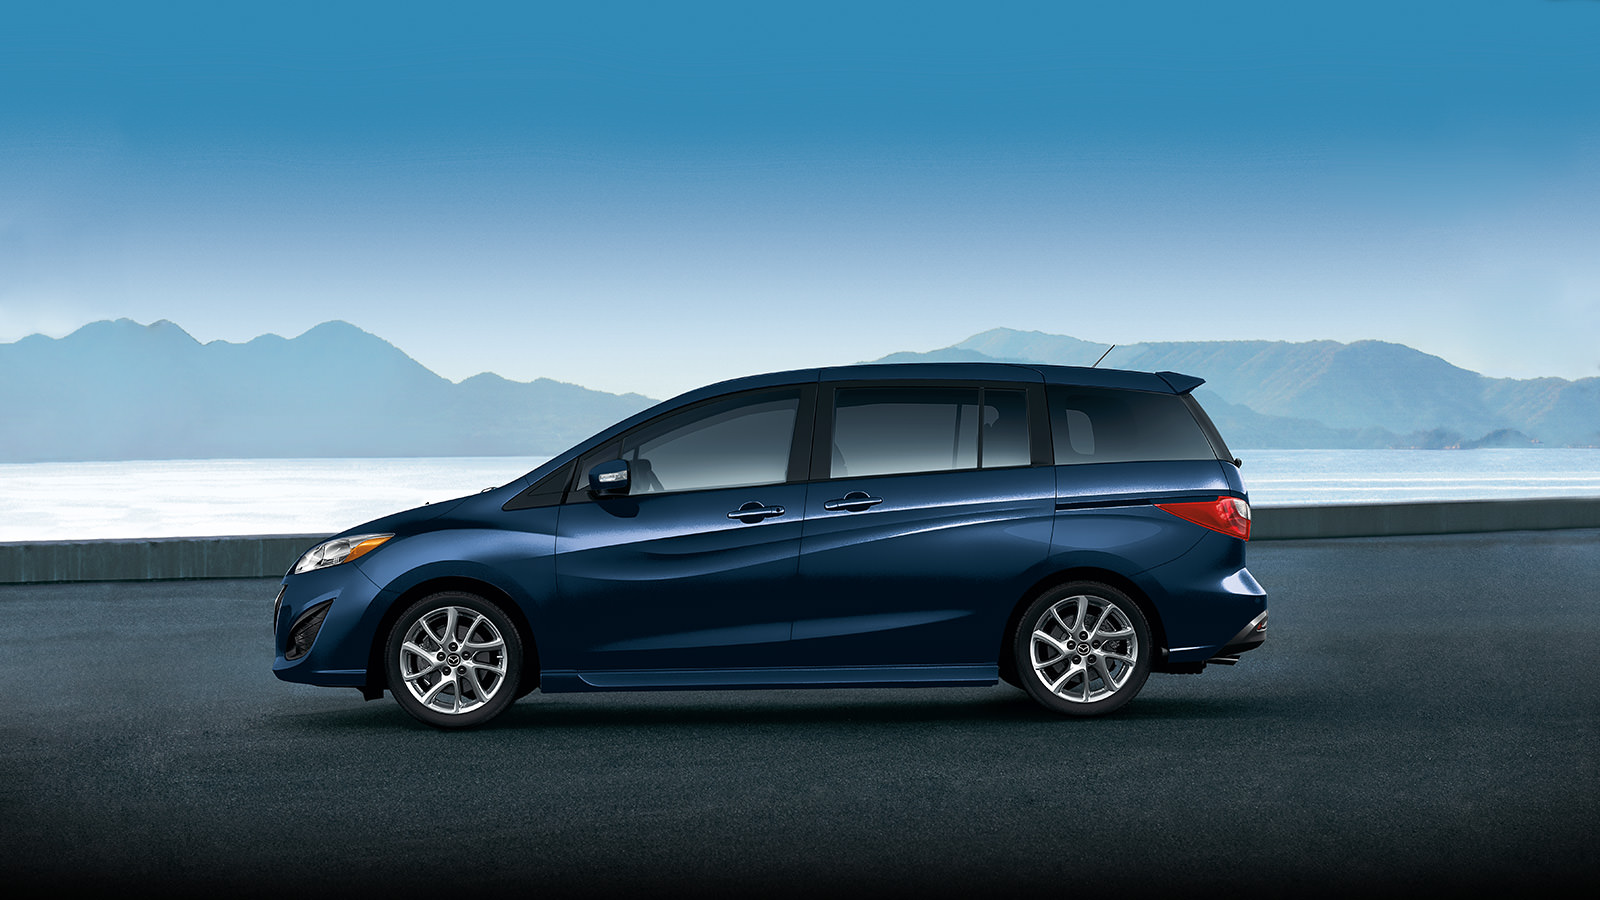 Pictures of mazda 5 #3